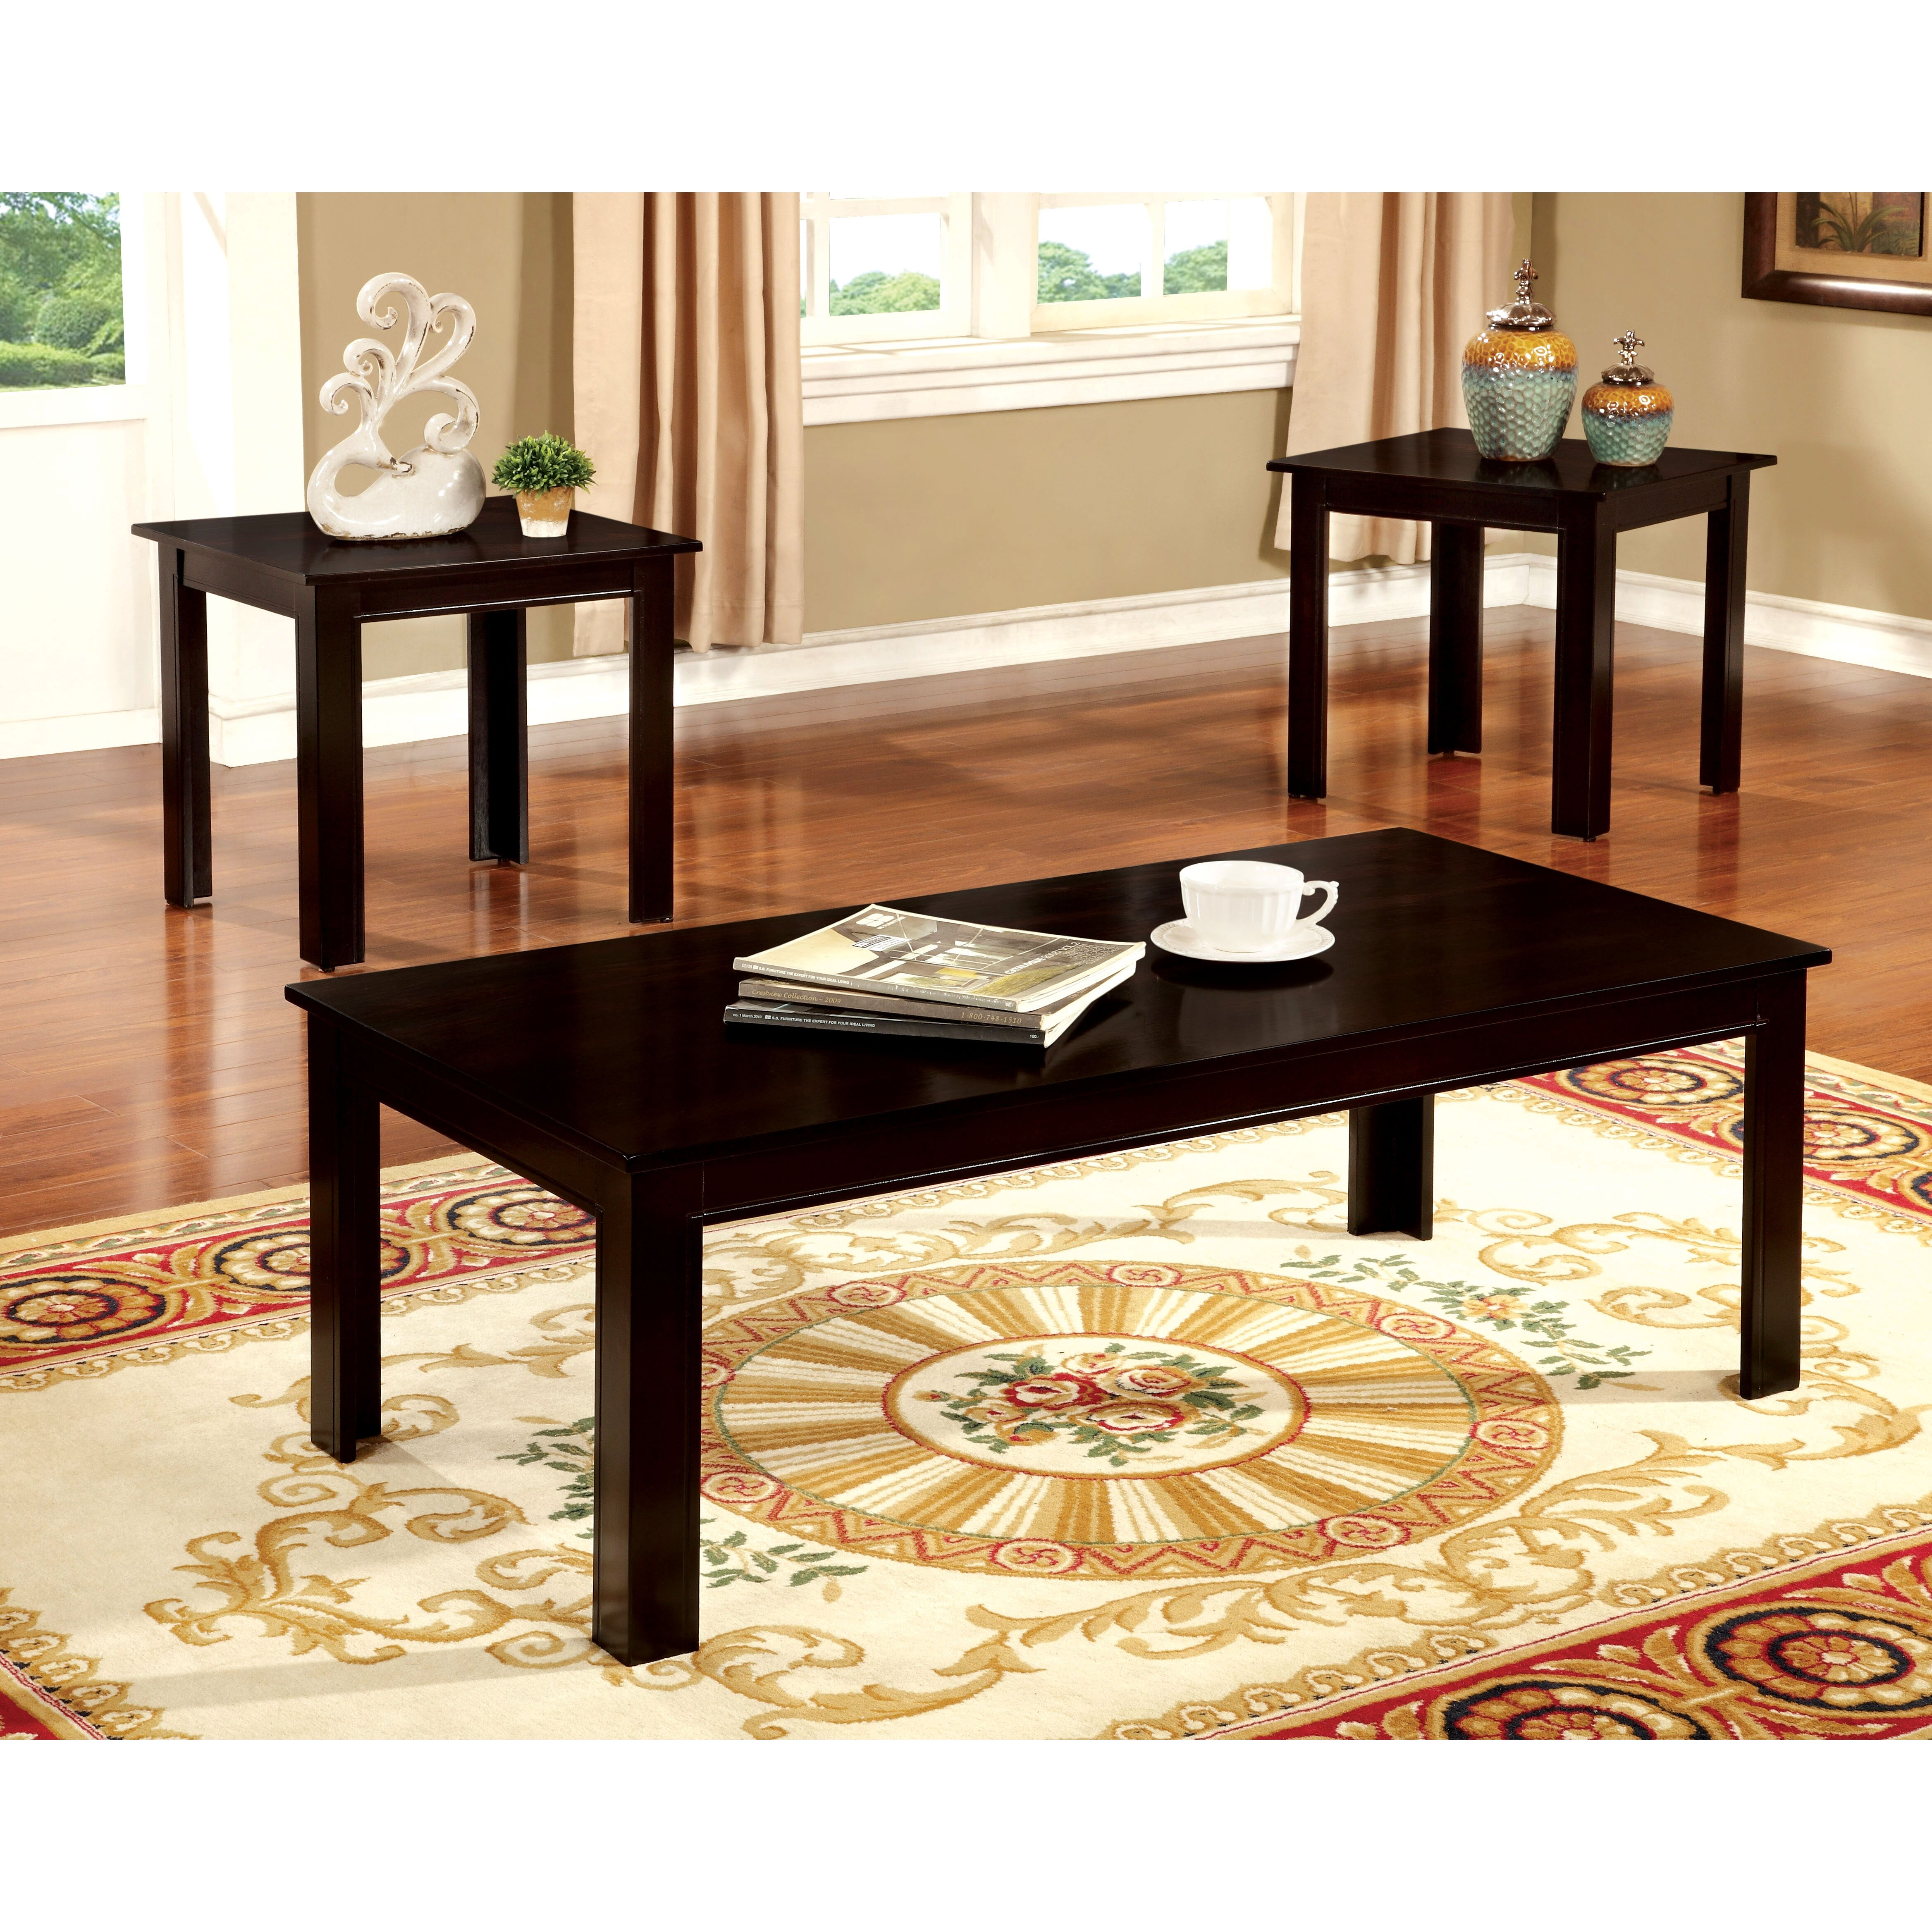 Veropeso 3 Piece Coffee Table Set: Hokku Designs Kaldi 3 Piece Coffee Table Set & Reviews